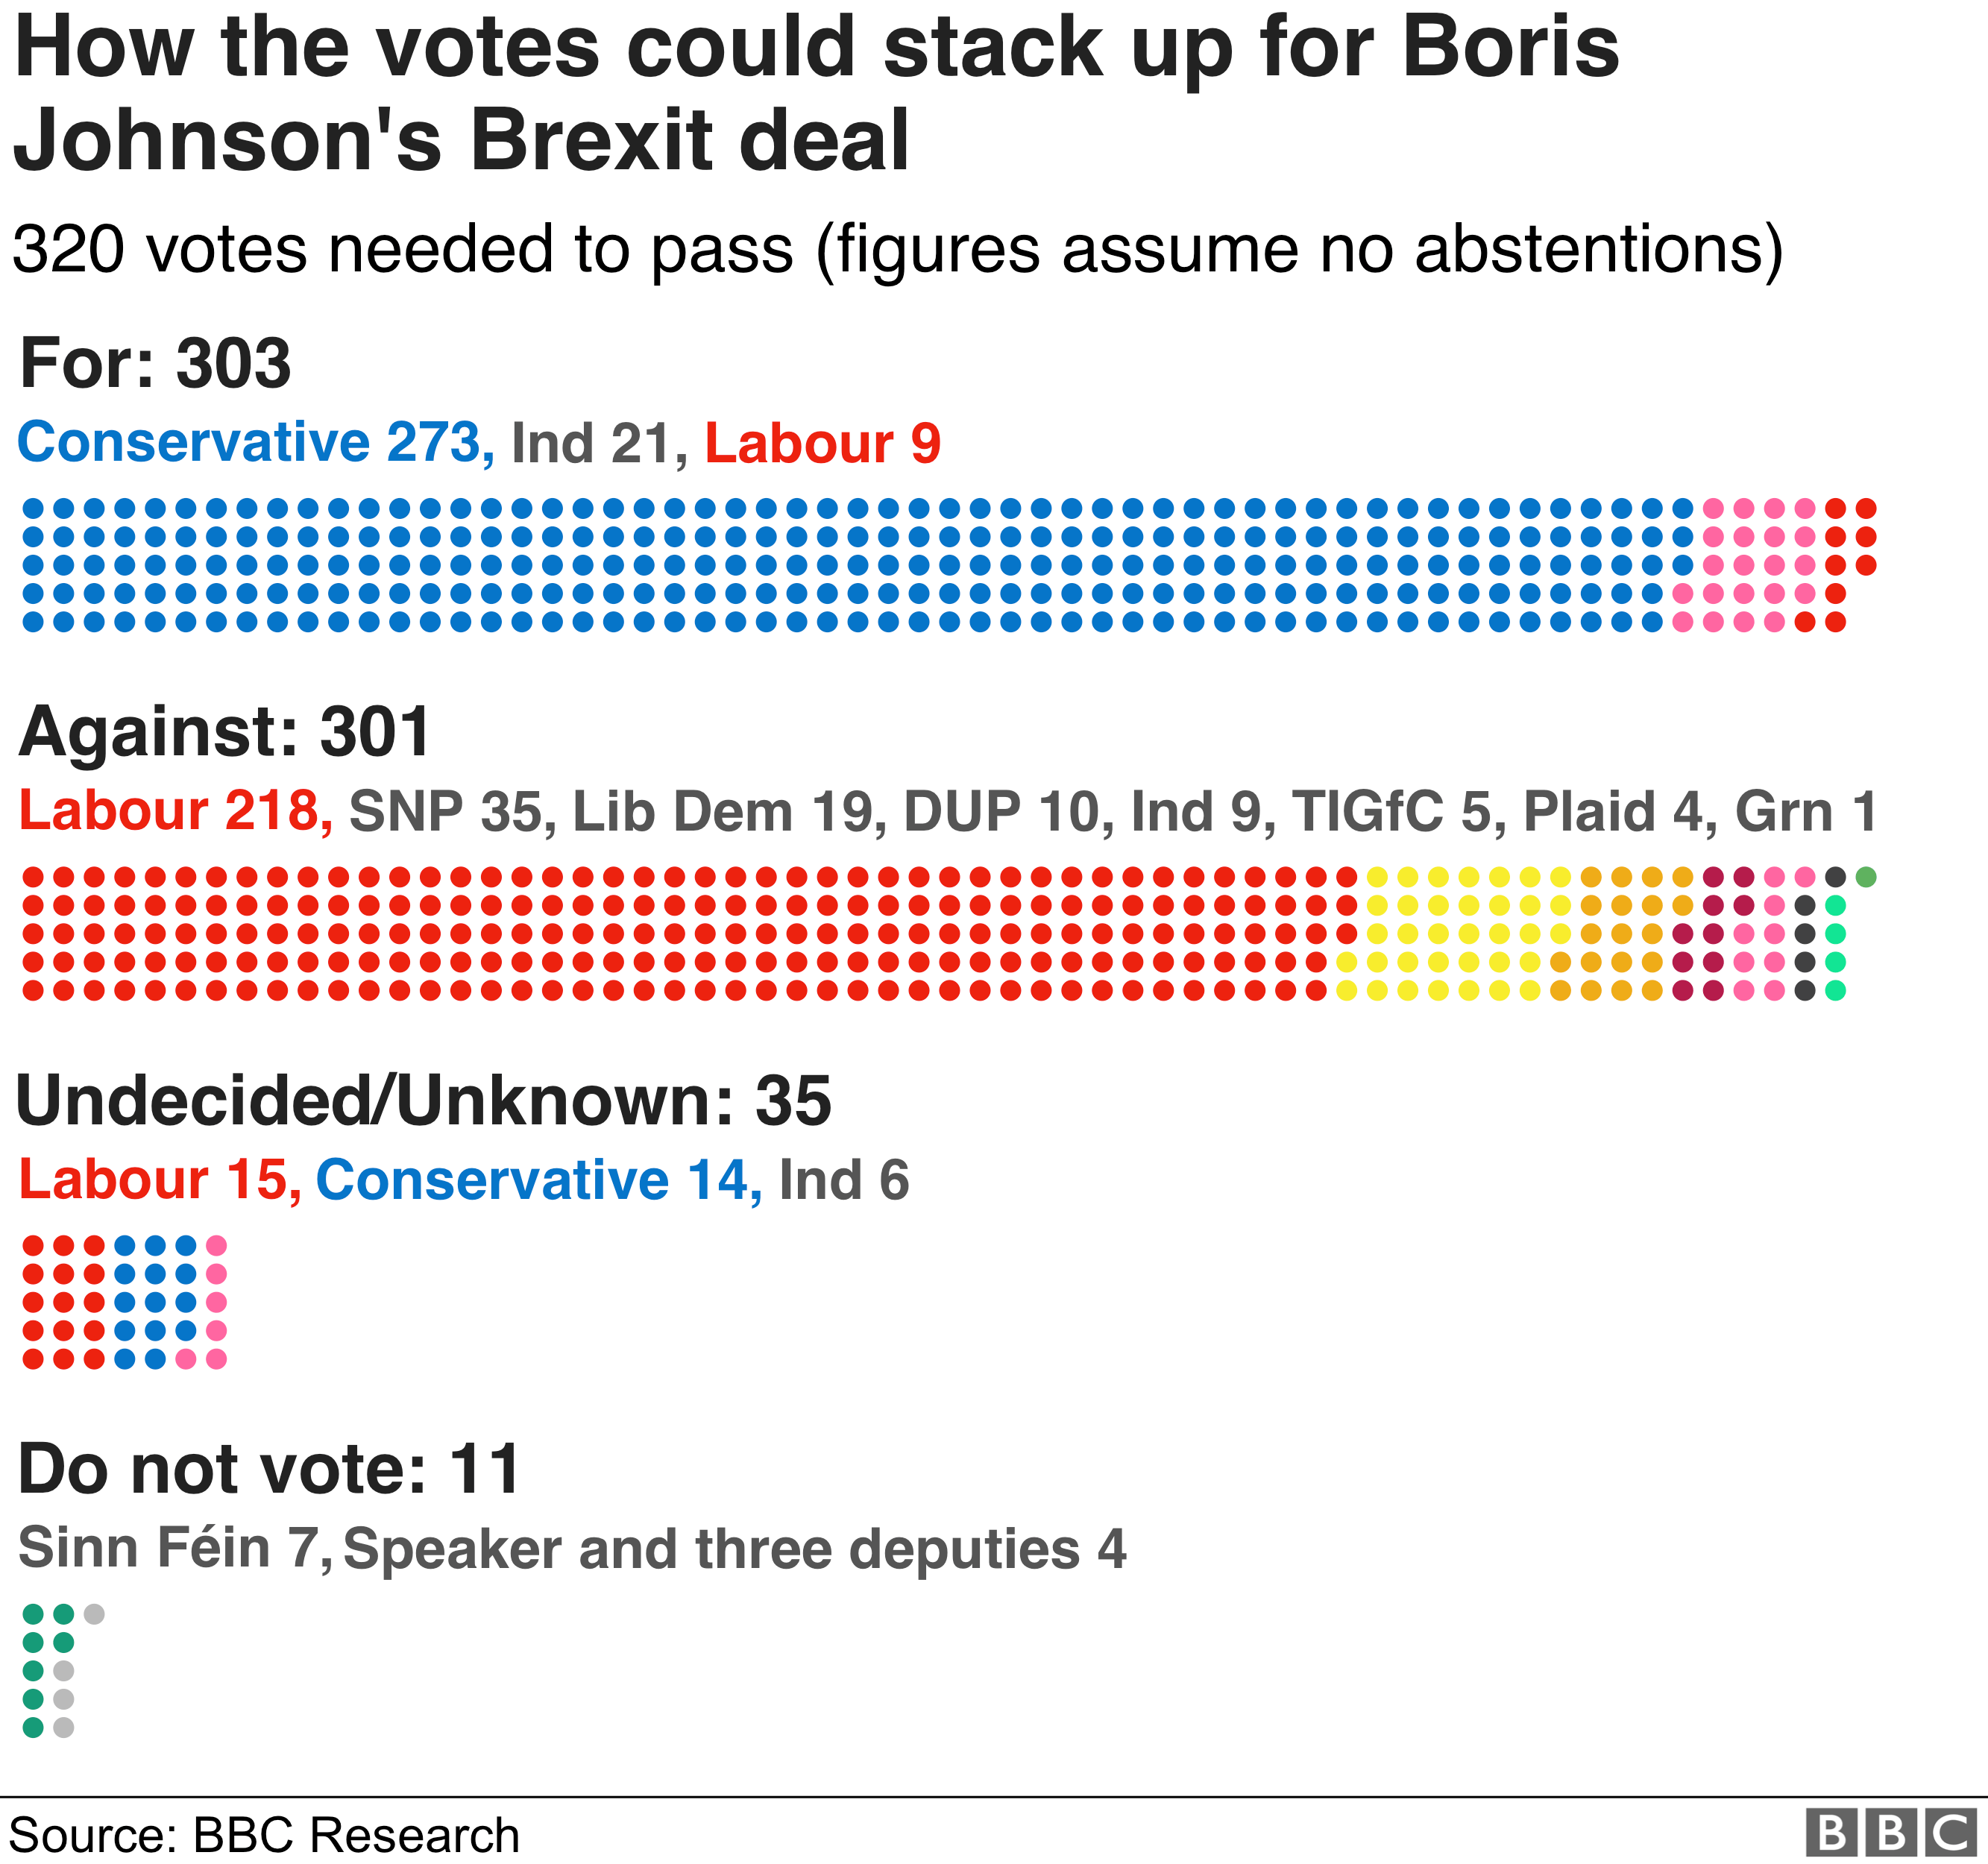 How the votes could stack up for Boris Johnson's Brexit deal